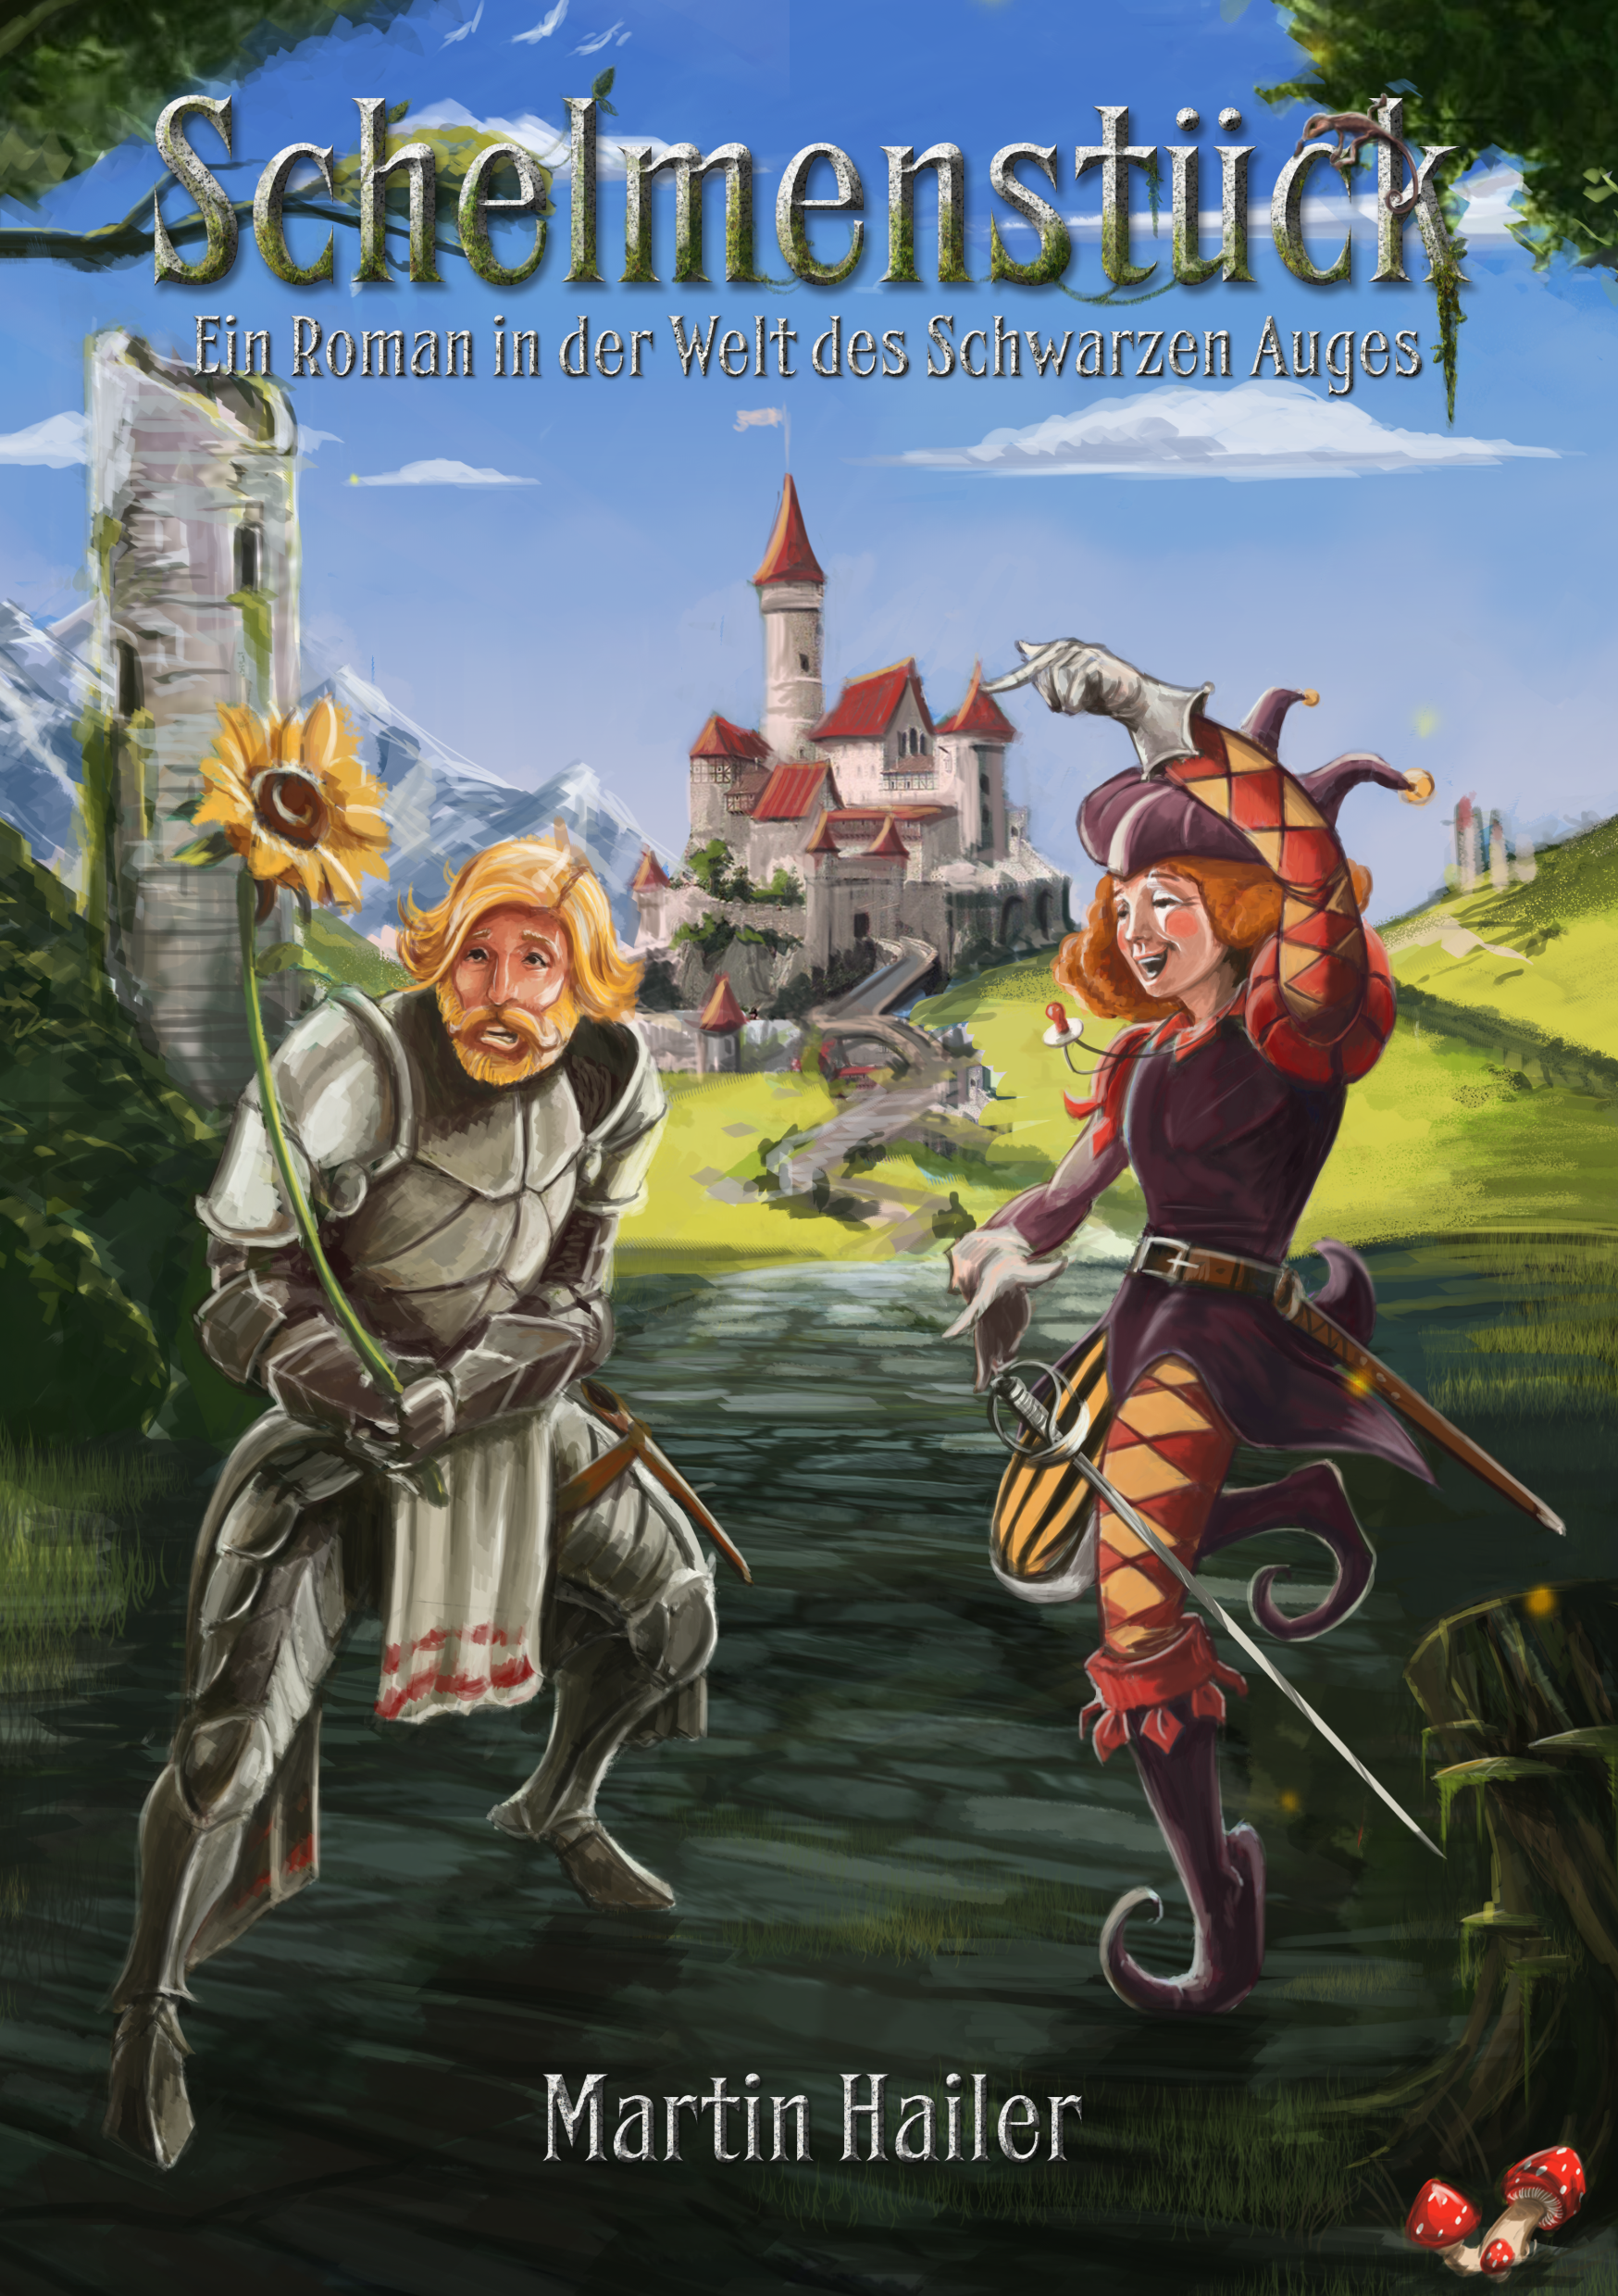 Book cover for a comical fantasy novel wanted